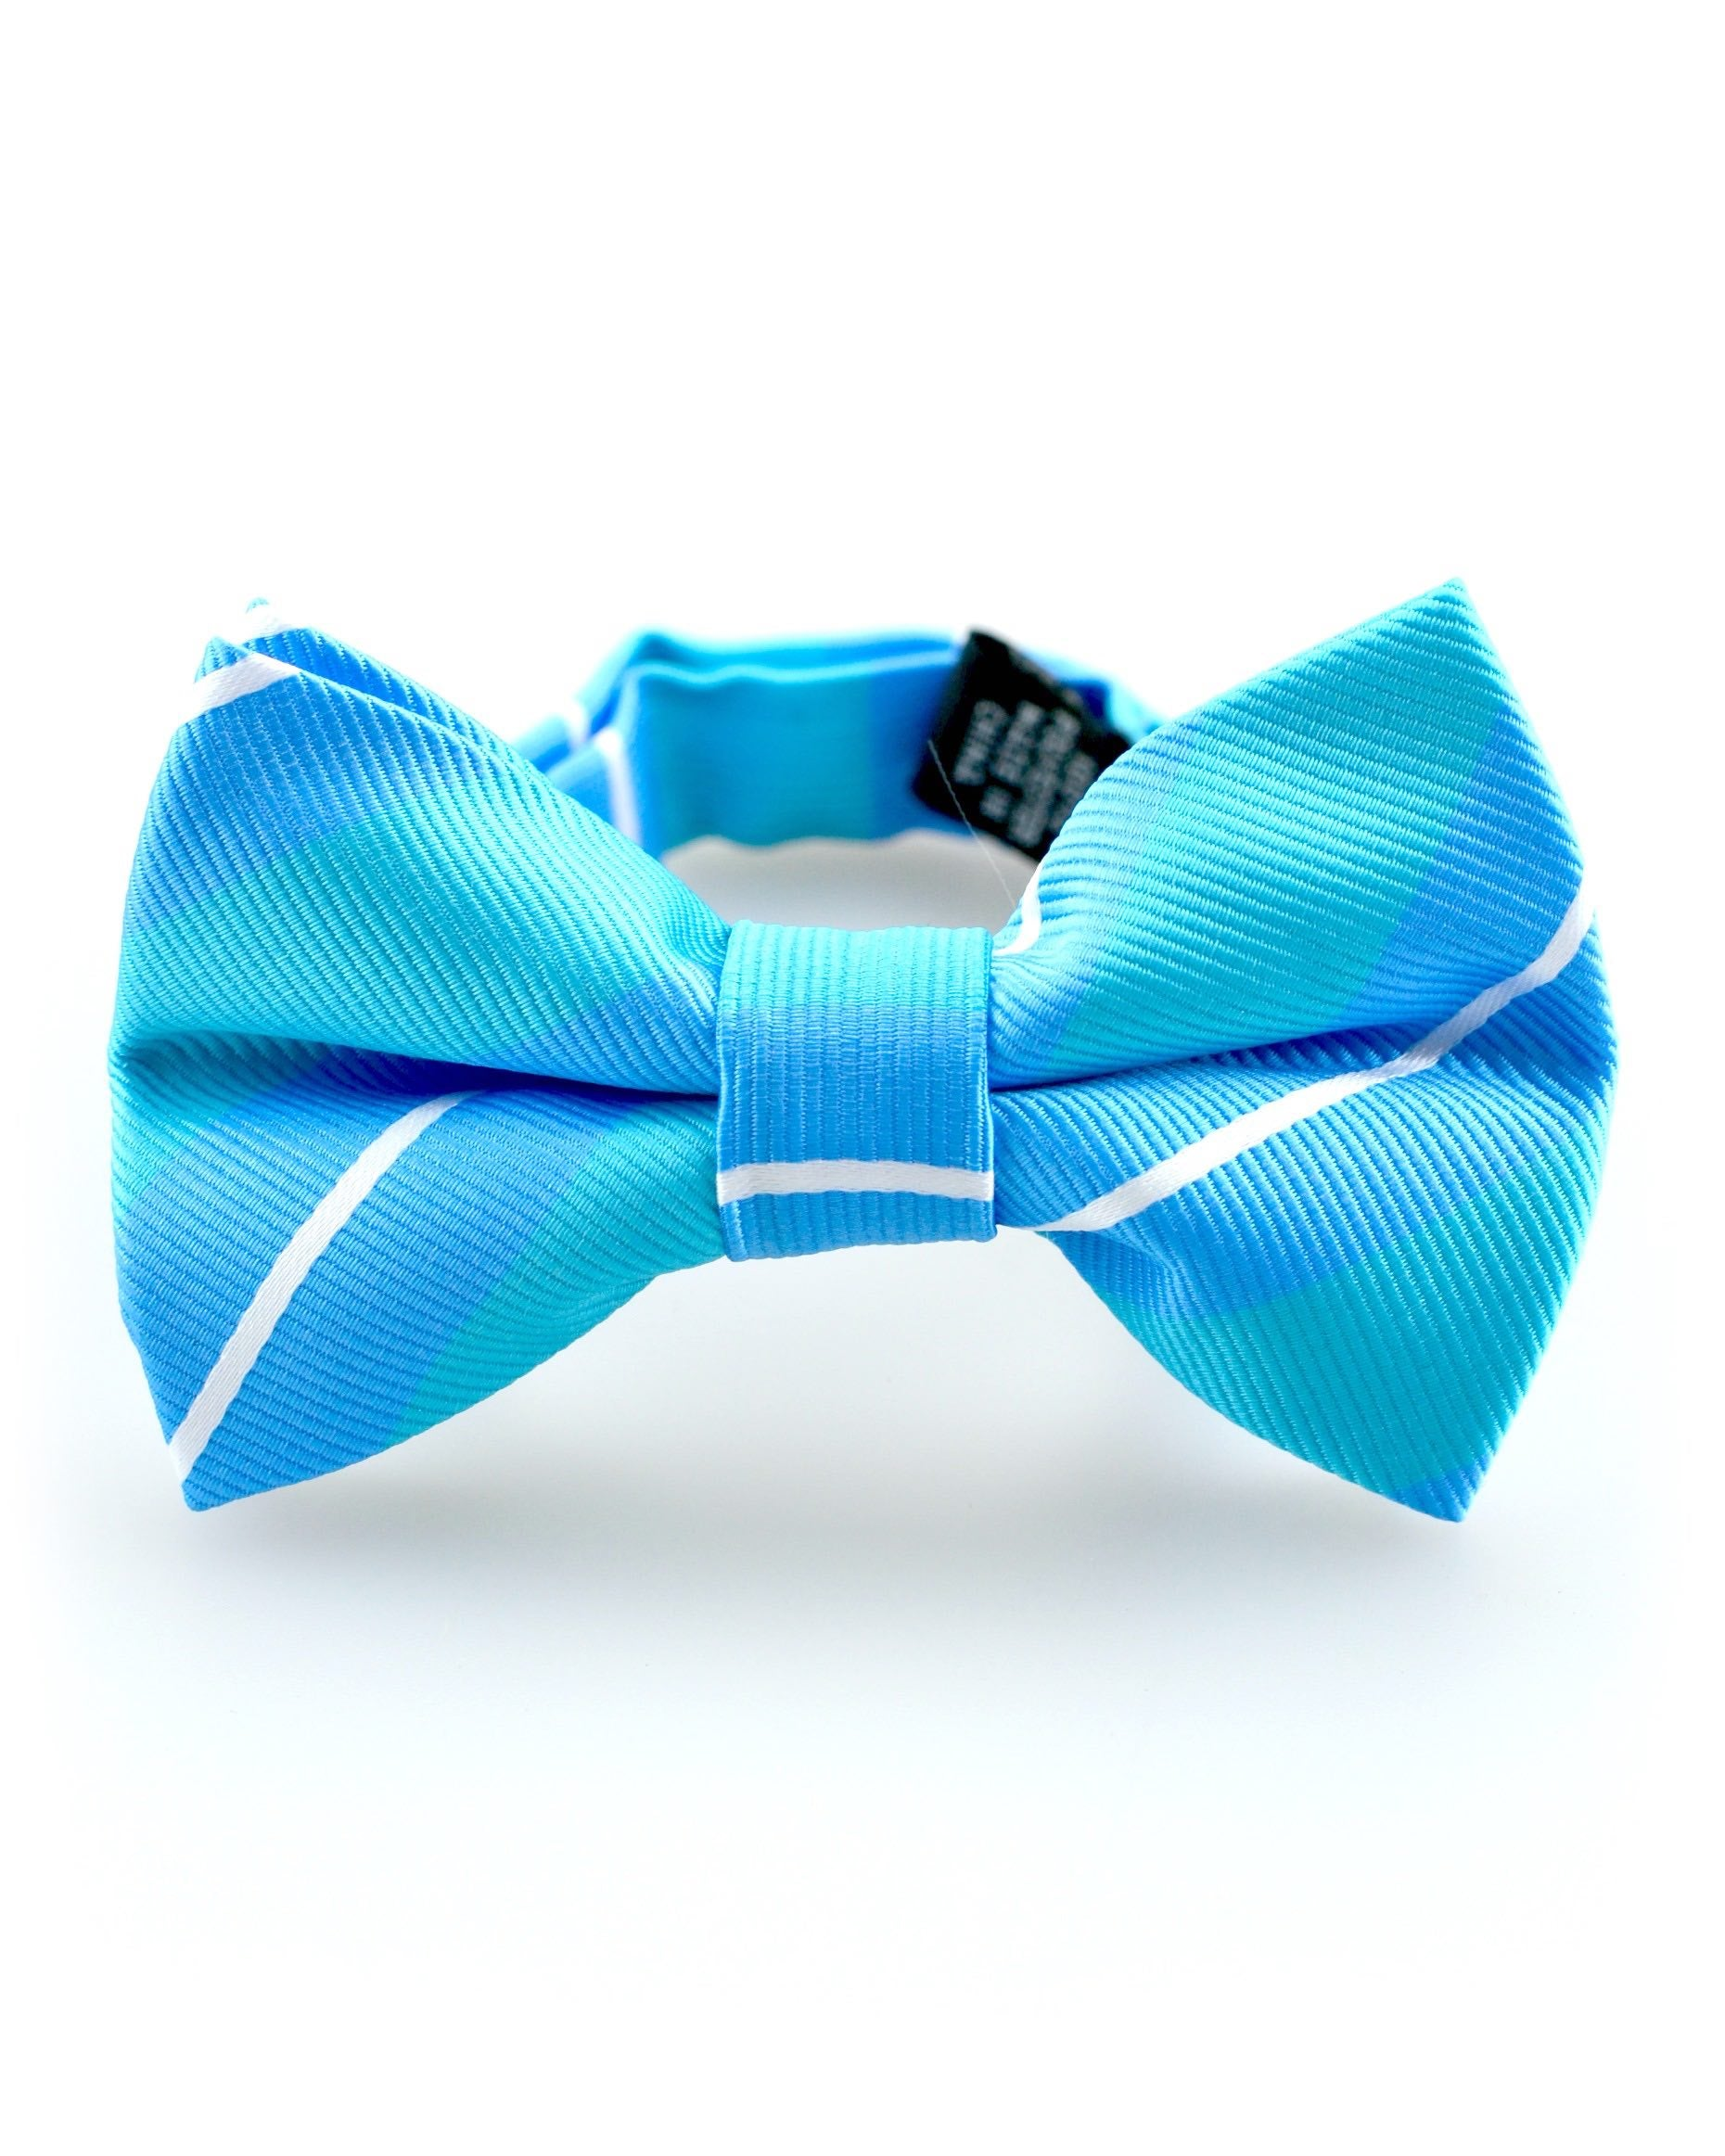 cerulean-and-sapphire-stripe-bow-tie.jpg